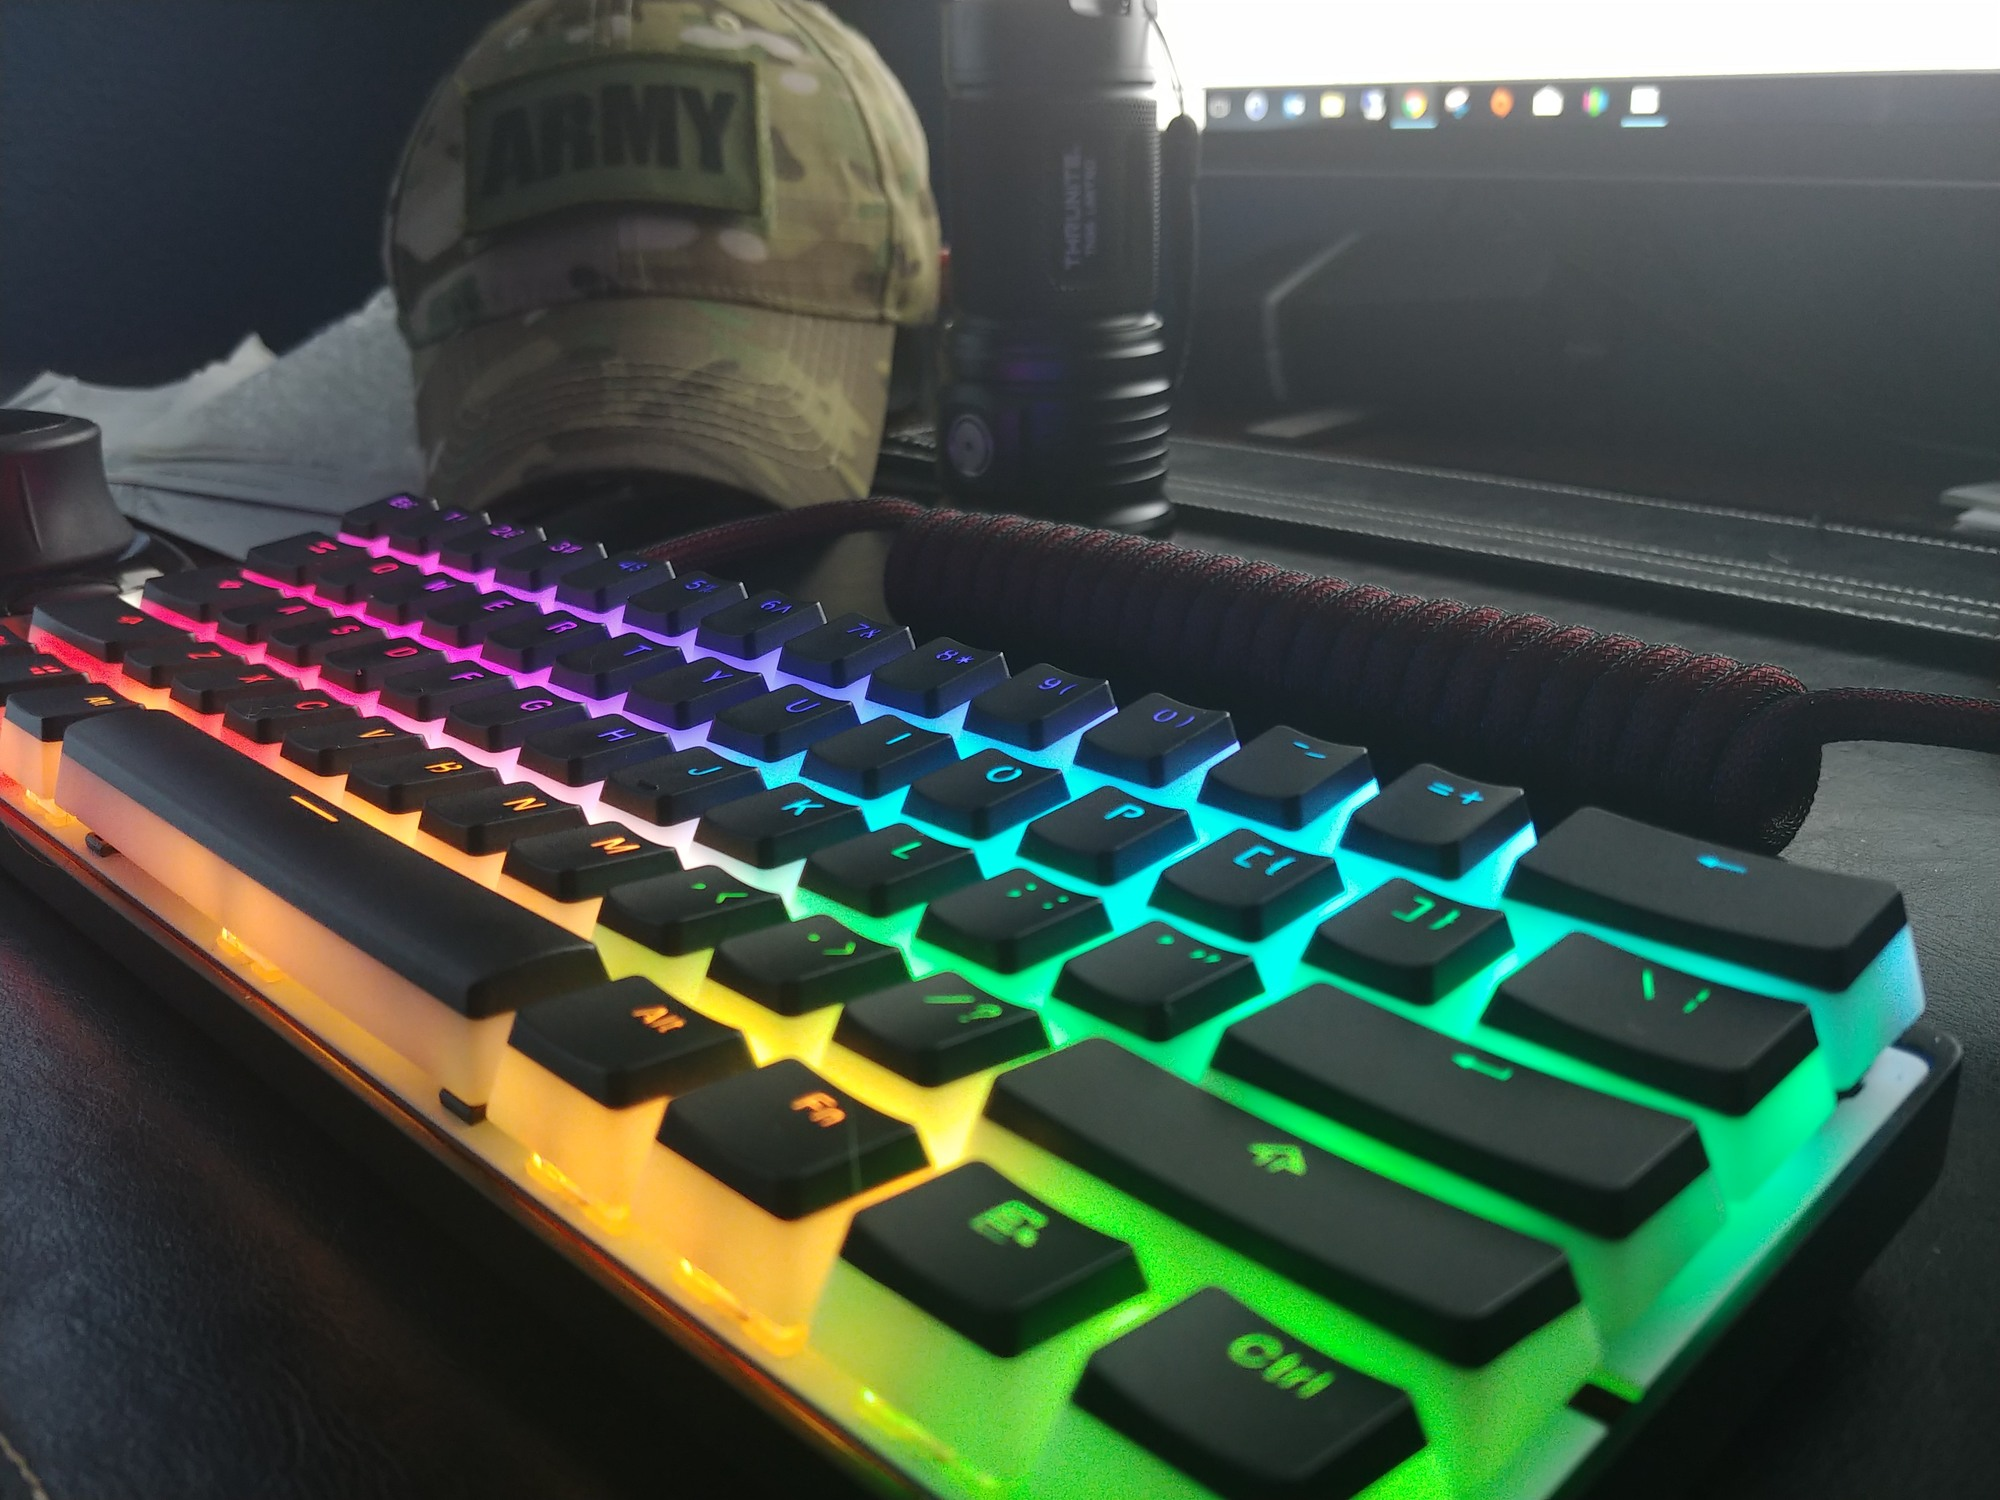 What Mouse and Keyboard Are You Using Right Now? | Page 3